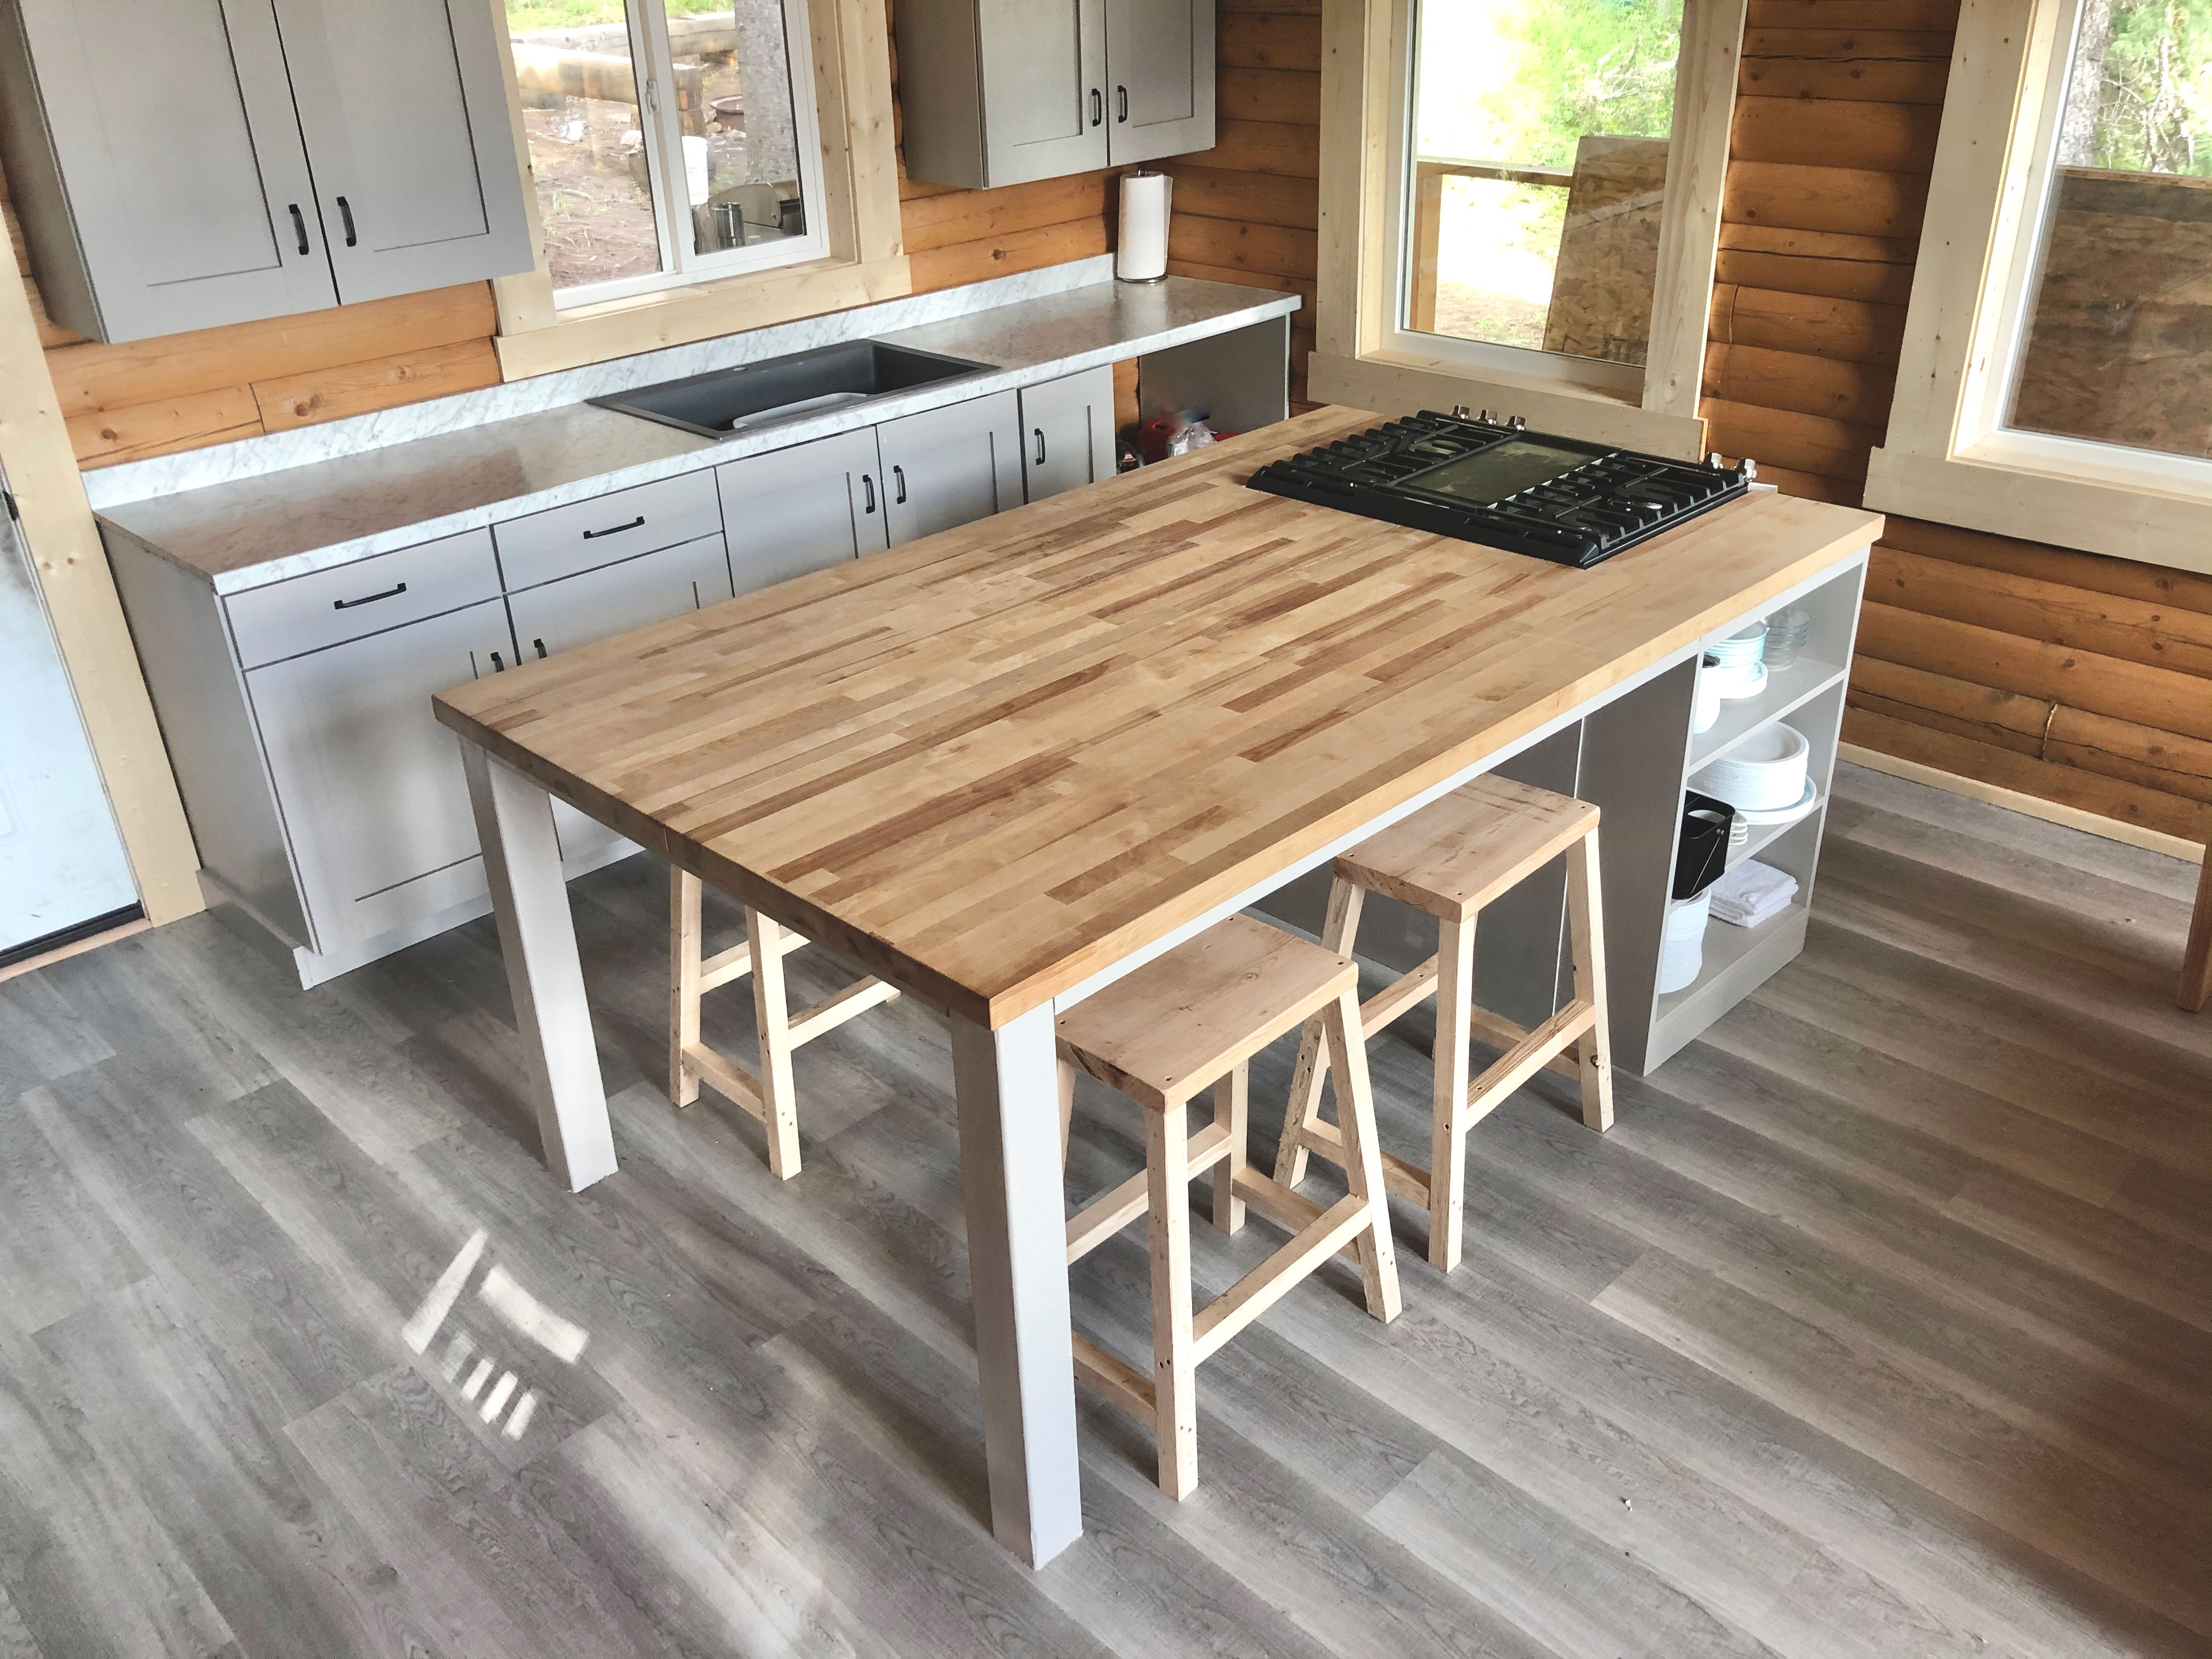 kitchen island for gathering